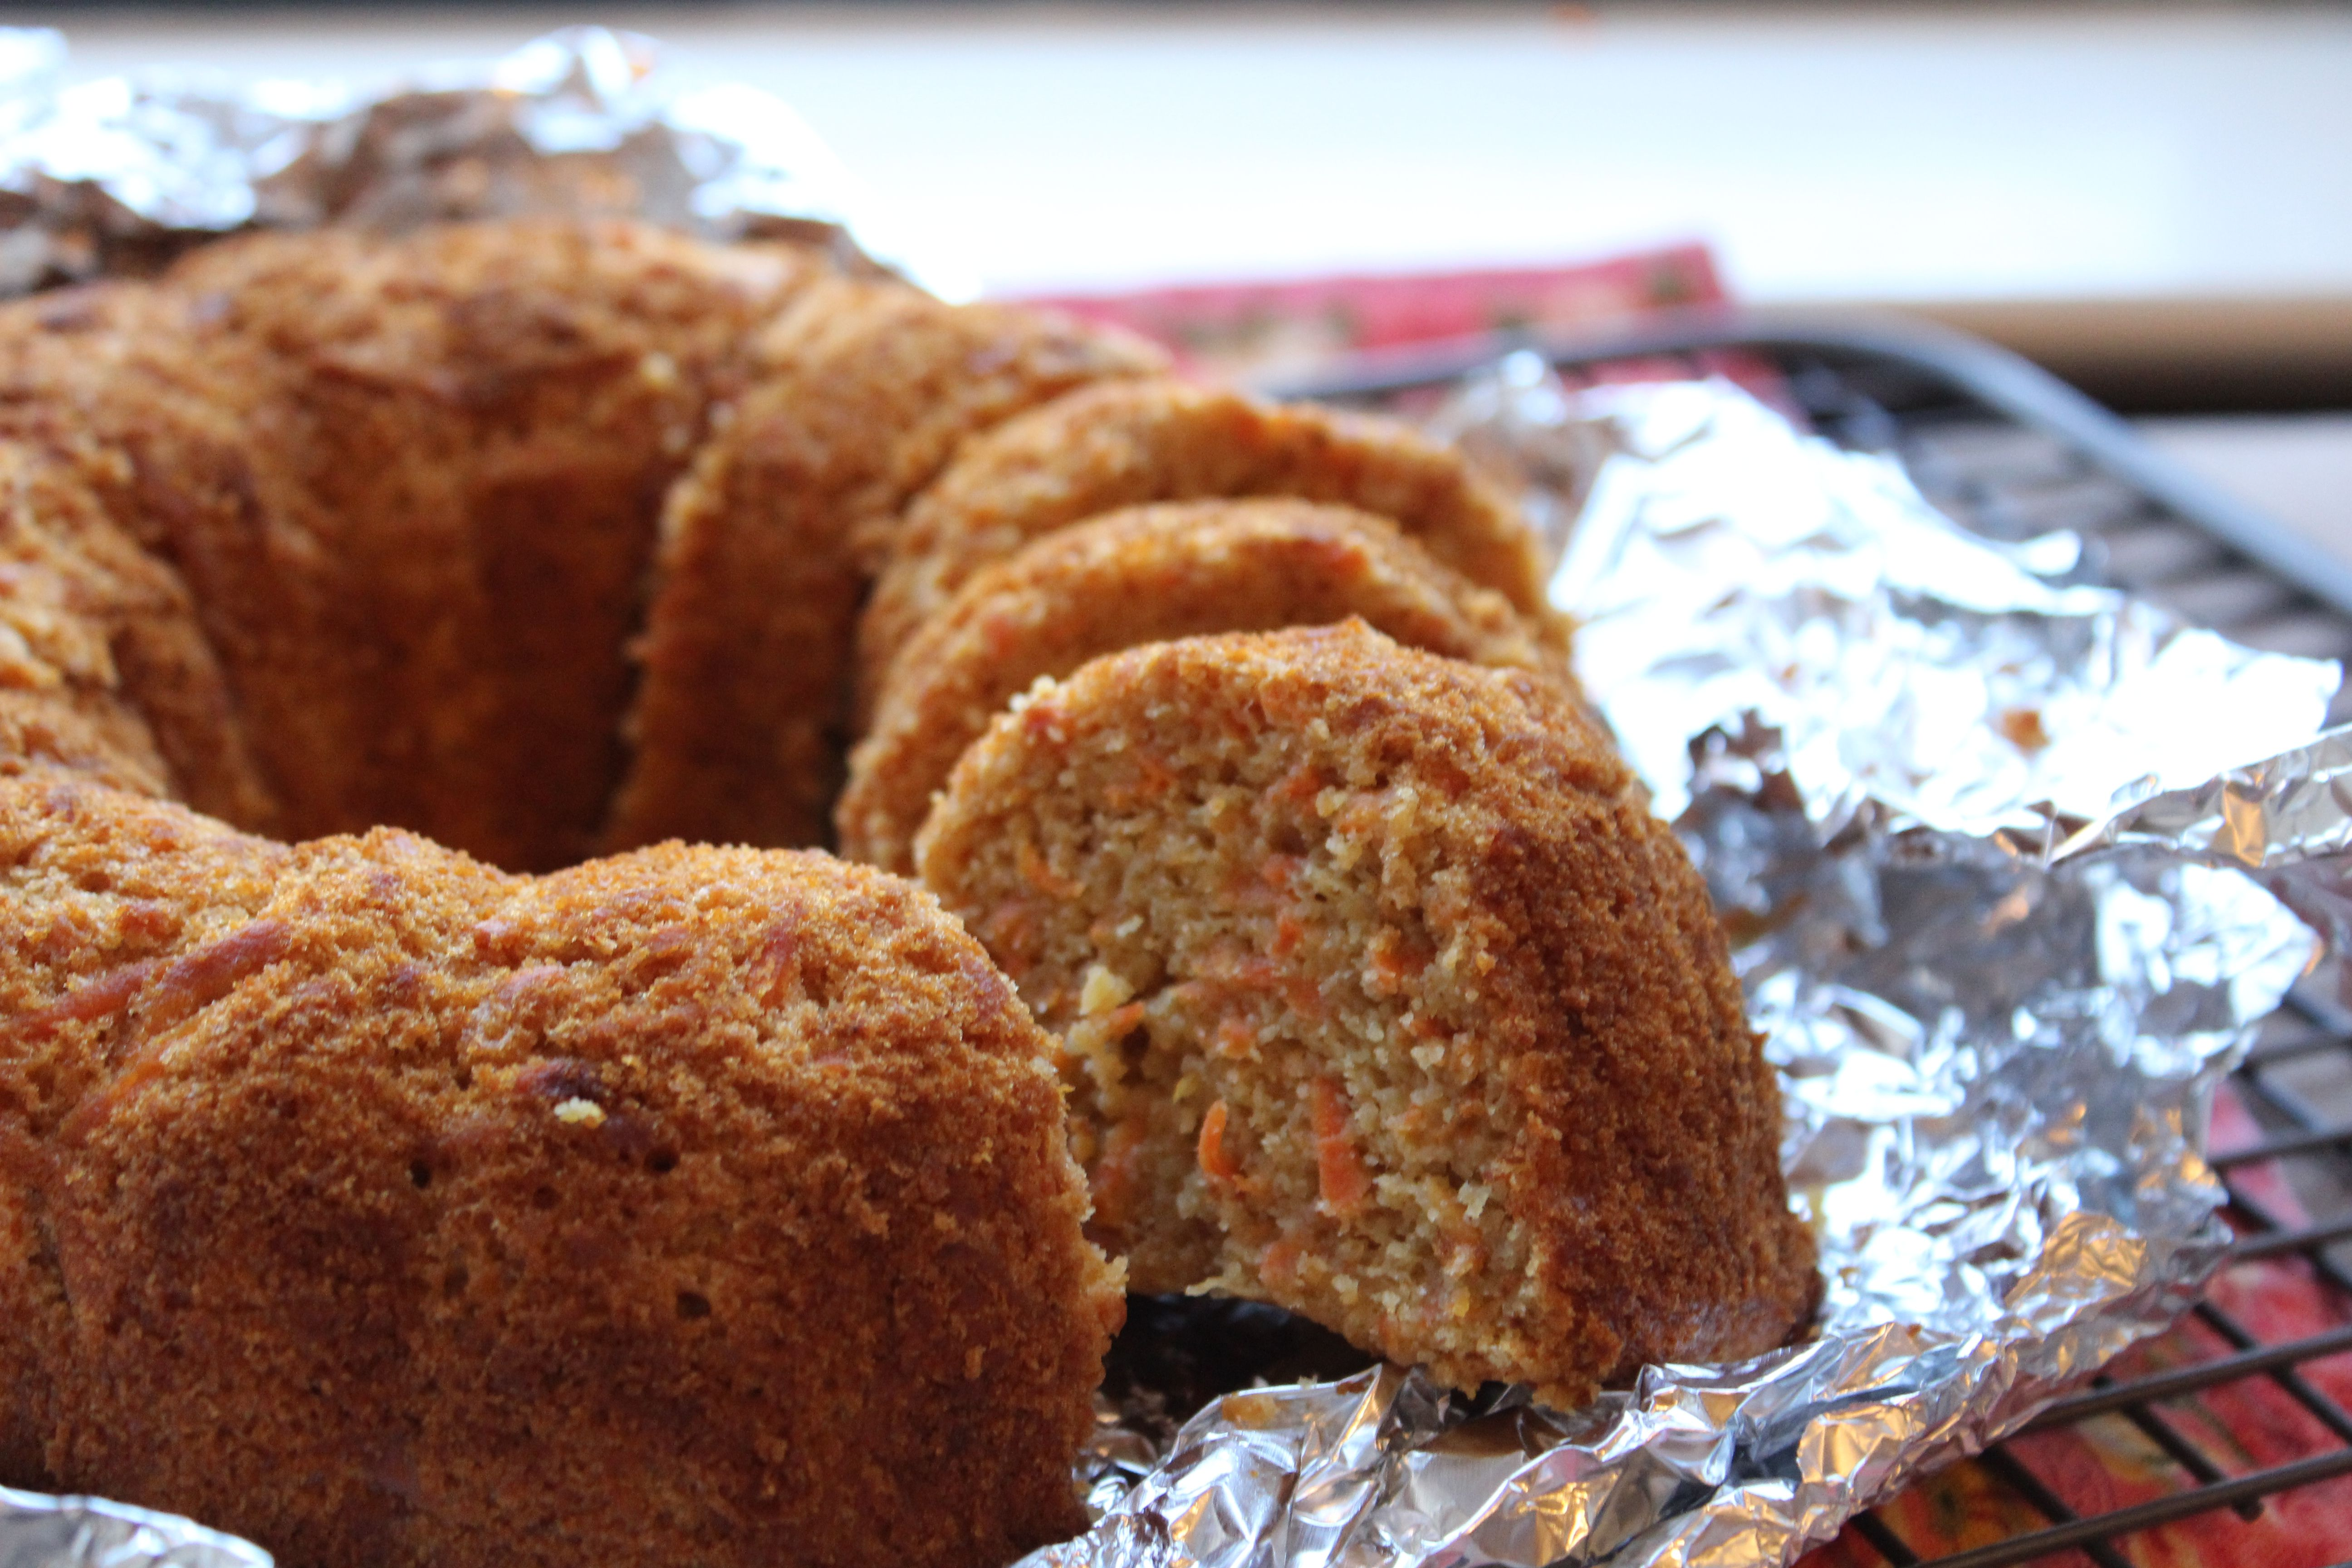 Carrot kugel made in a Bundt pan without noodles